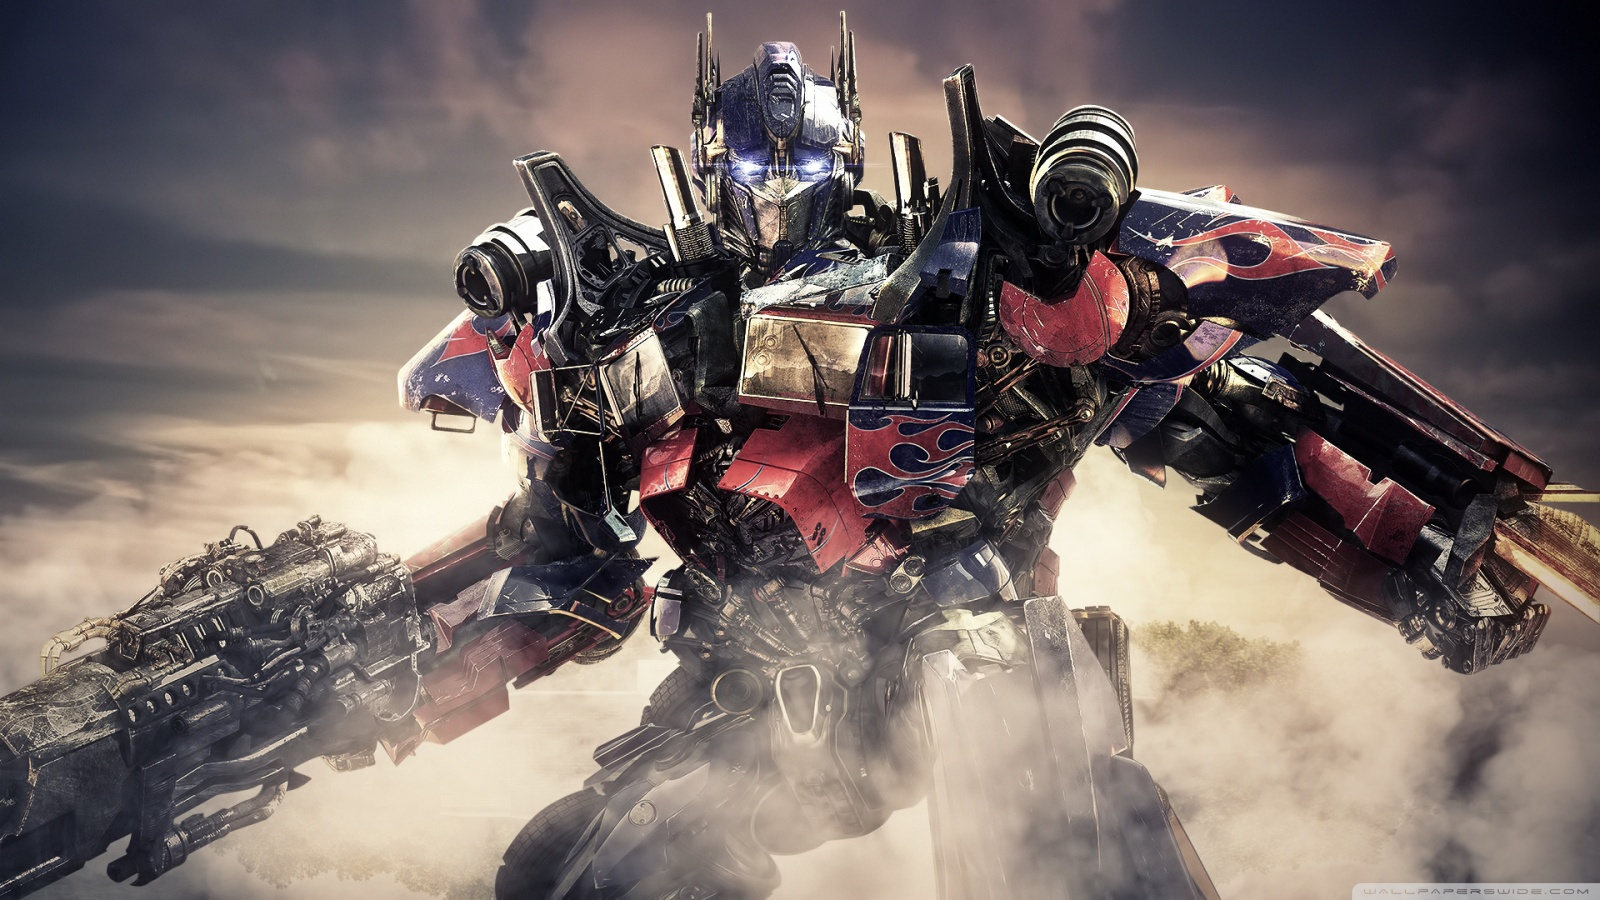 Transformers 4 age of extinction 2014 wallpapers - Wallpapers transformers 4 ...